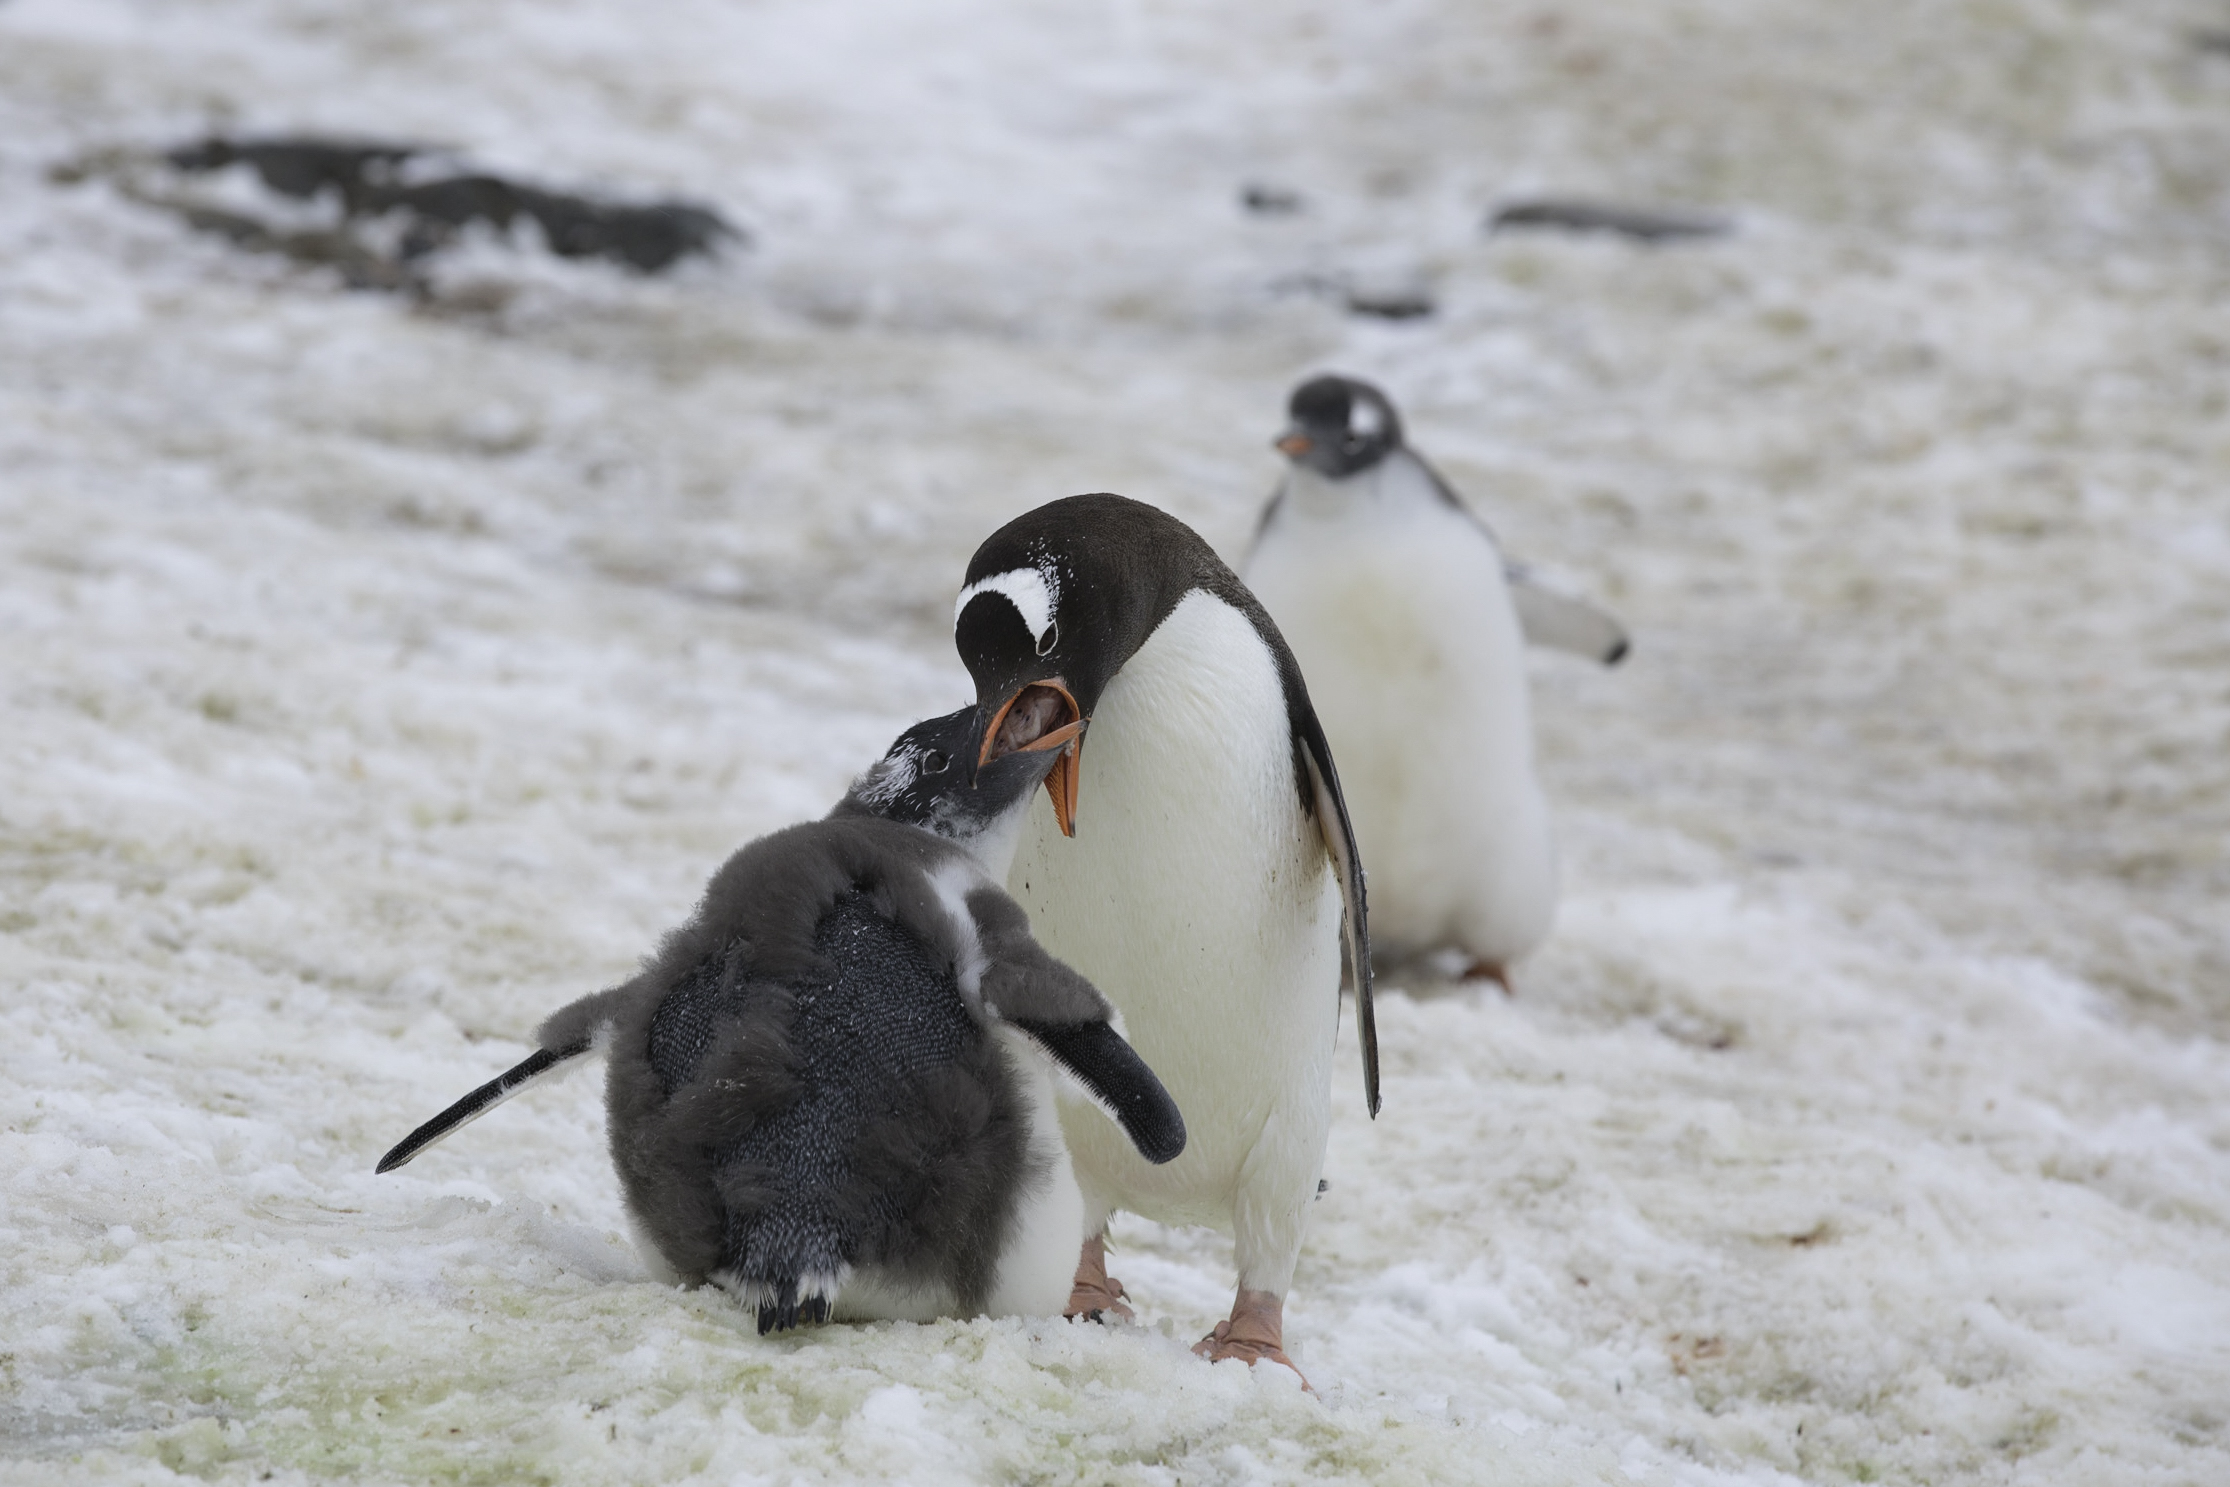 Zoom in and you'll see the large pocket of food (krill, squid, fish), being regurgitated to the young gentoo penguin by its parent.